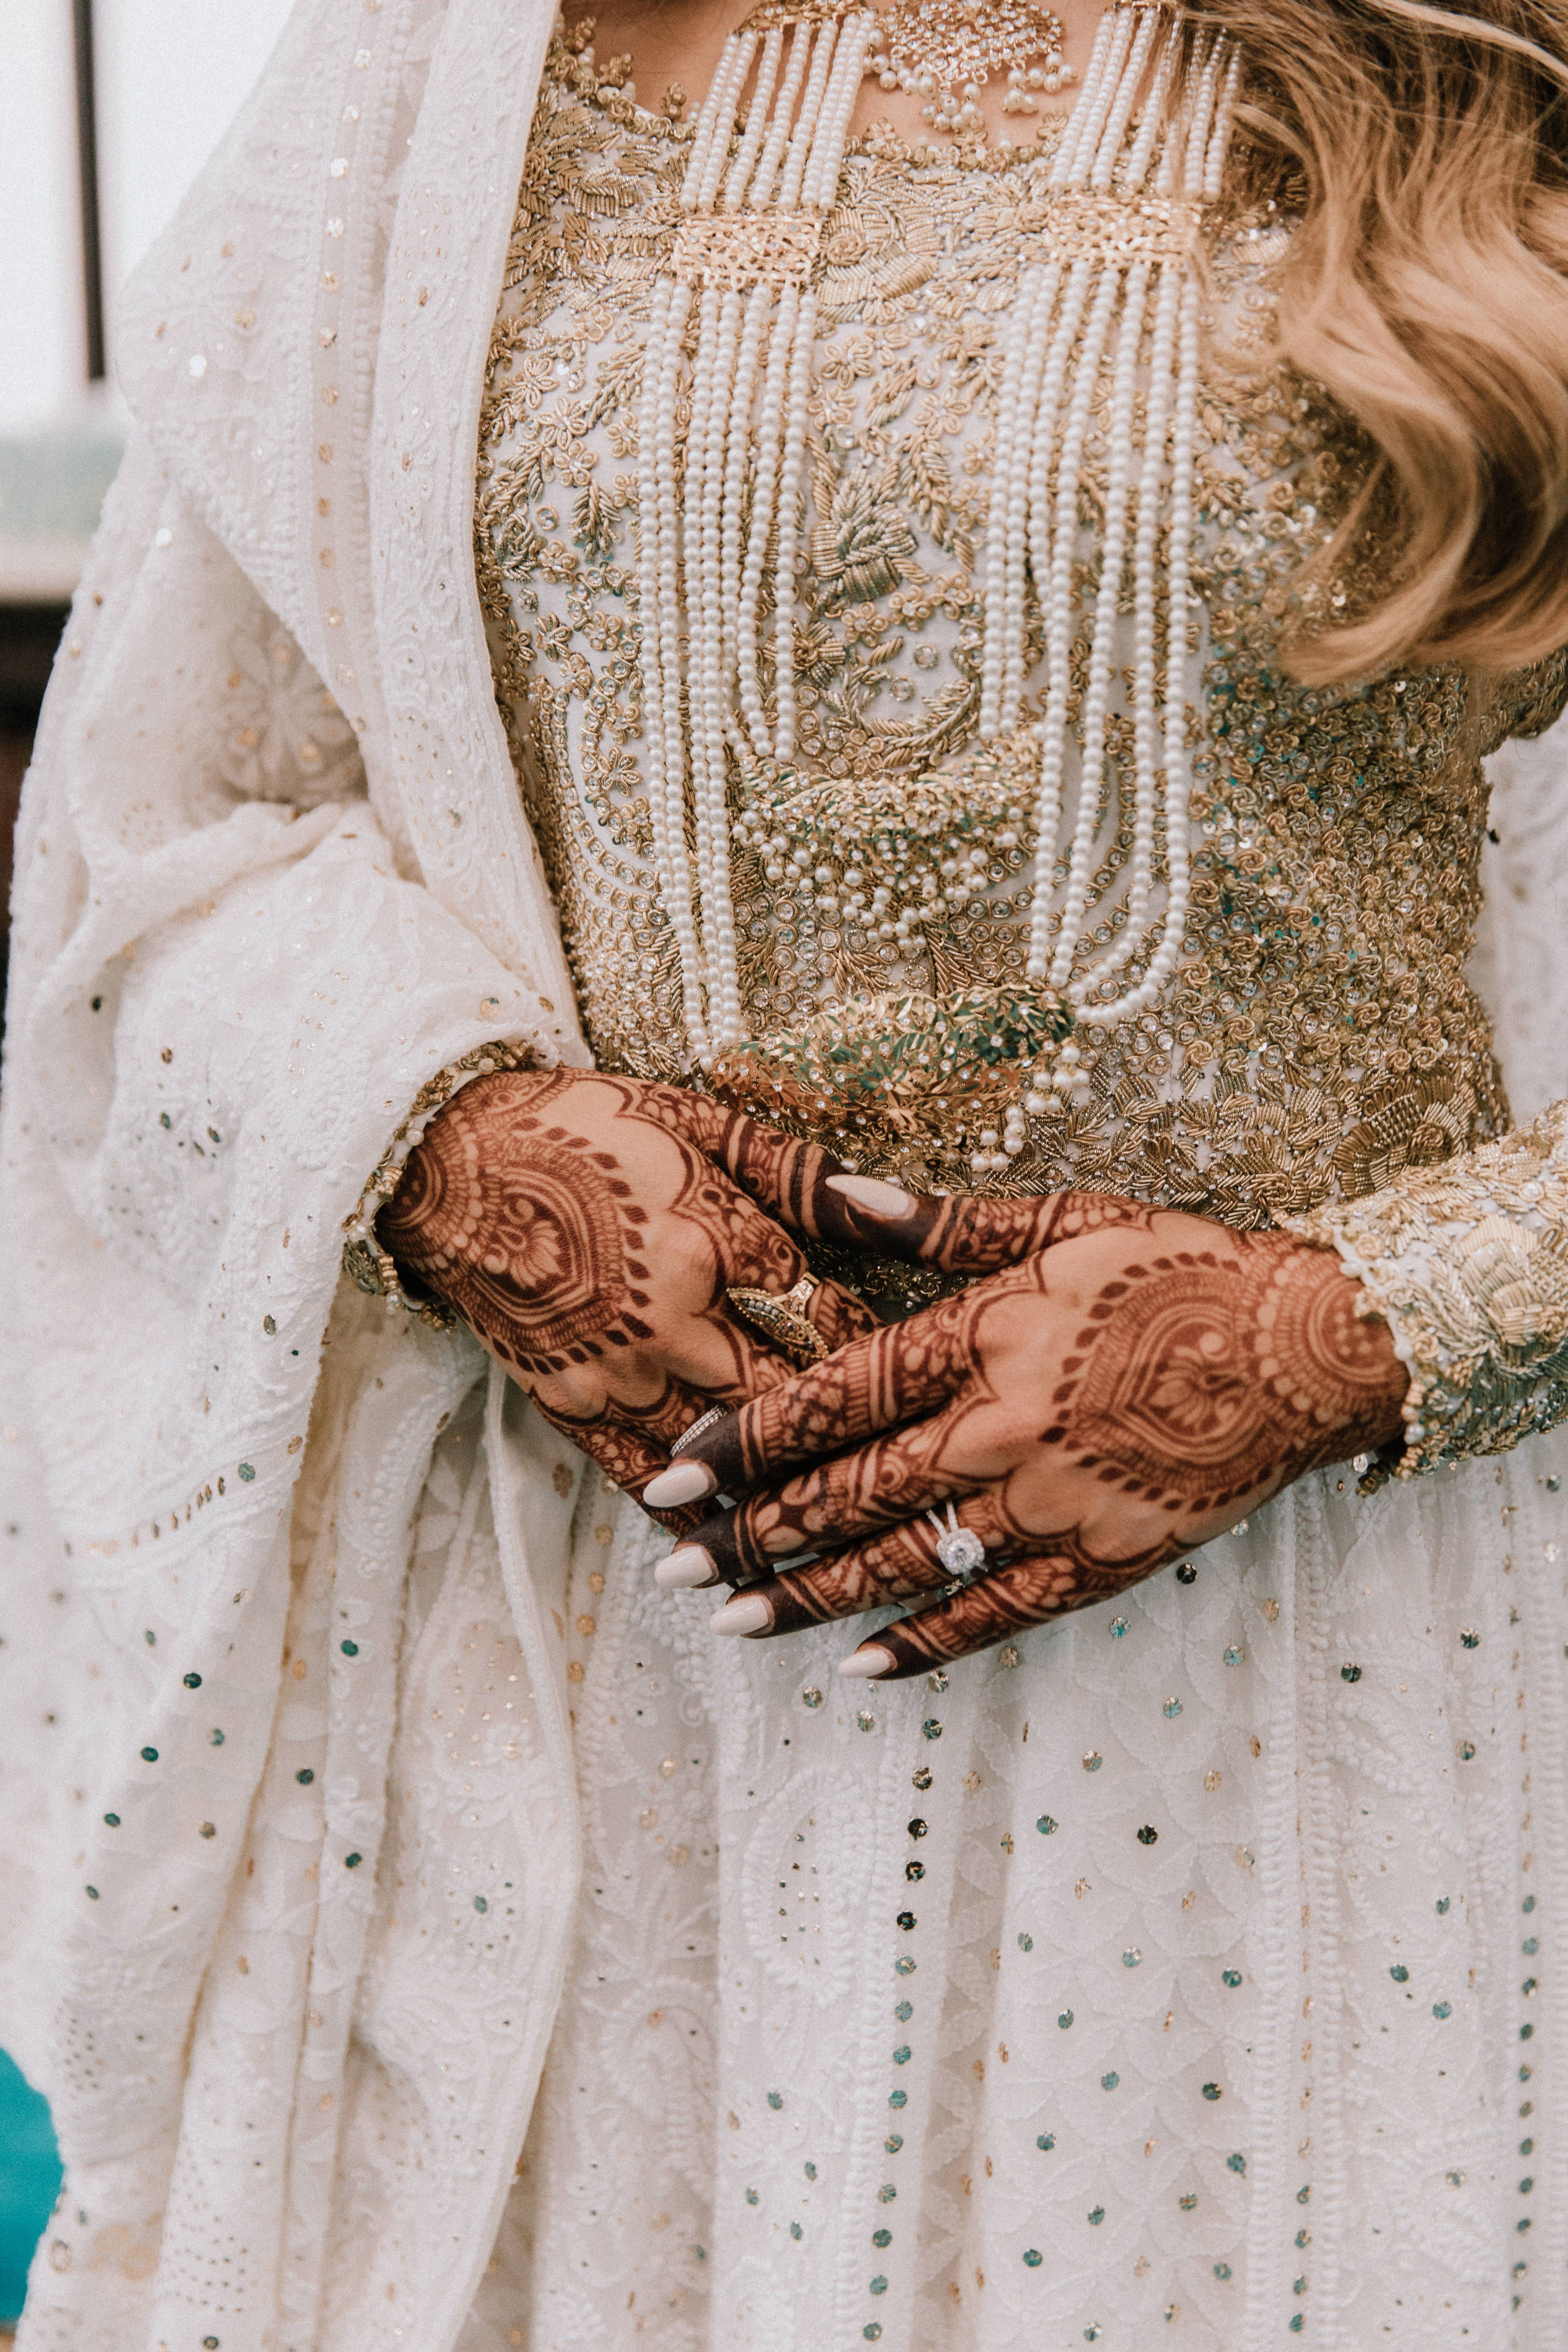 Some gorgeous bridal inspiration for your feed today!✨ Loved this classic and traditional look for our bride's Nikah ceremony!❤️ There is something about having simple and elegant details that always creates a timeless look!✨ #nikahinspiration #bridedetails #southasianbrideinspiration #weddingdiaries #traditionandculture #whiteandgold